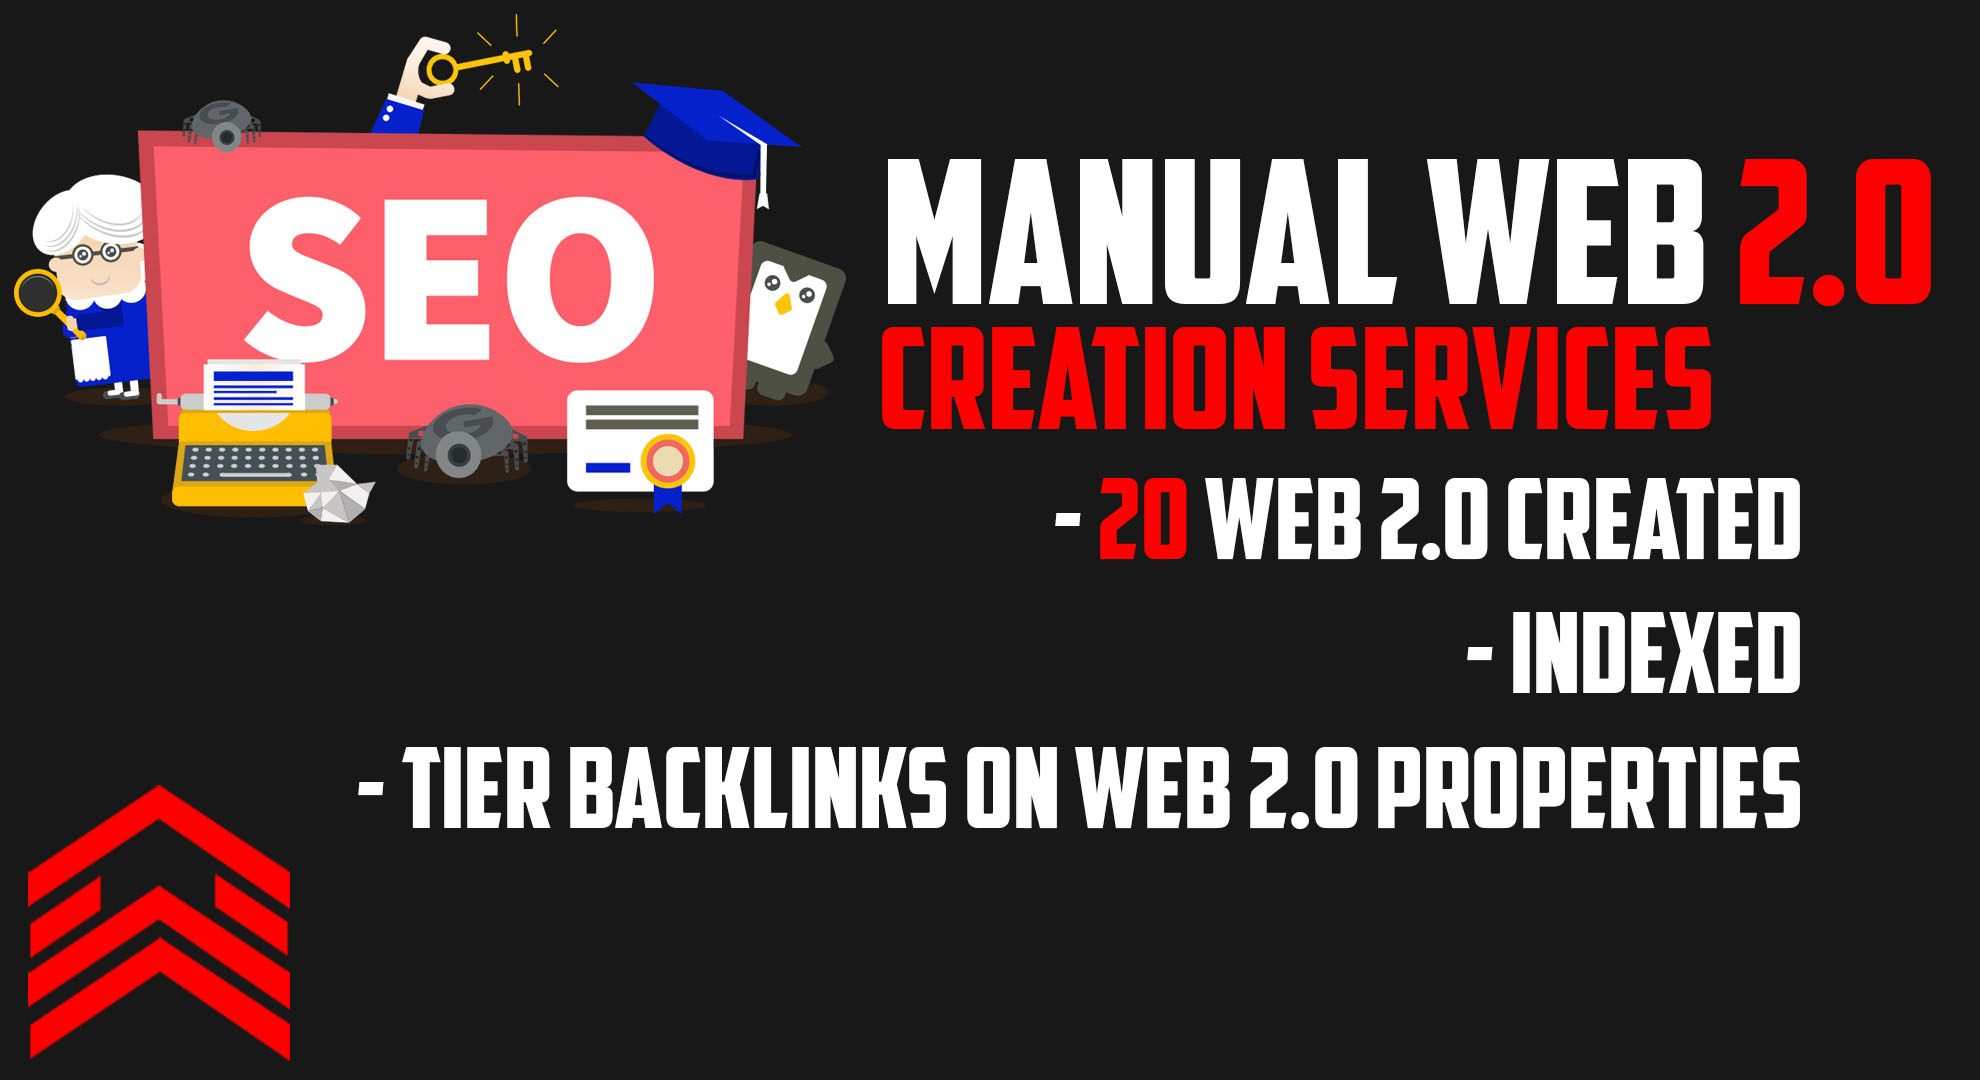 20 Manually created Web 2.0 properties - INDEXED with Tier links